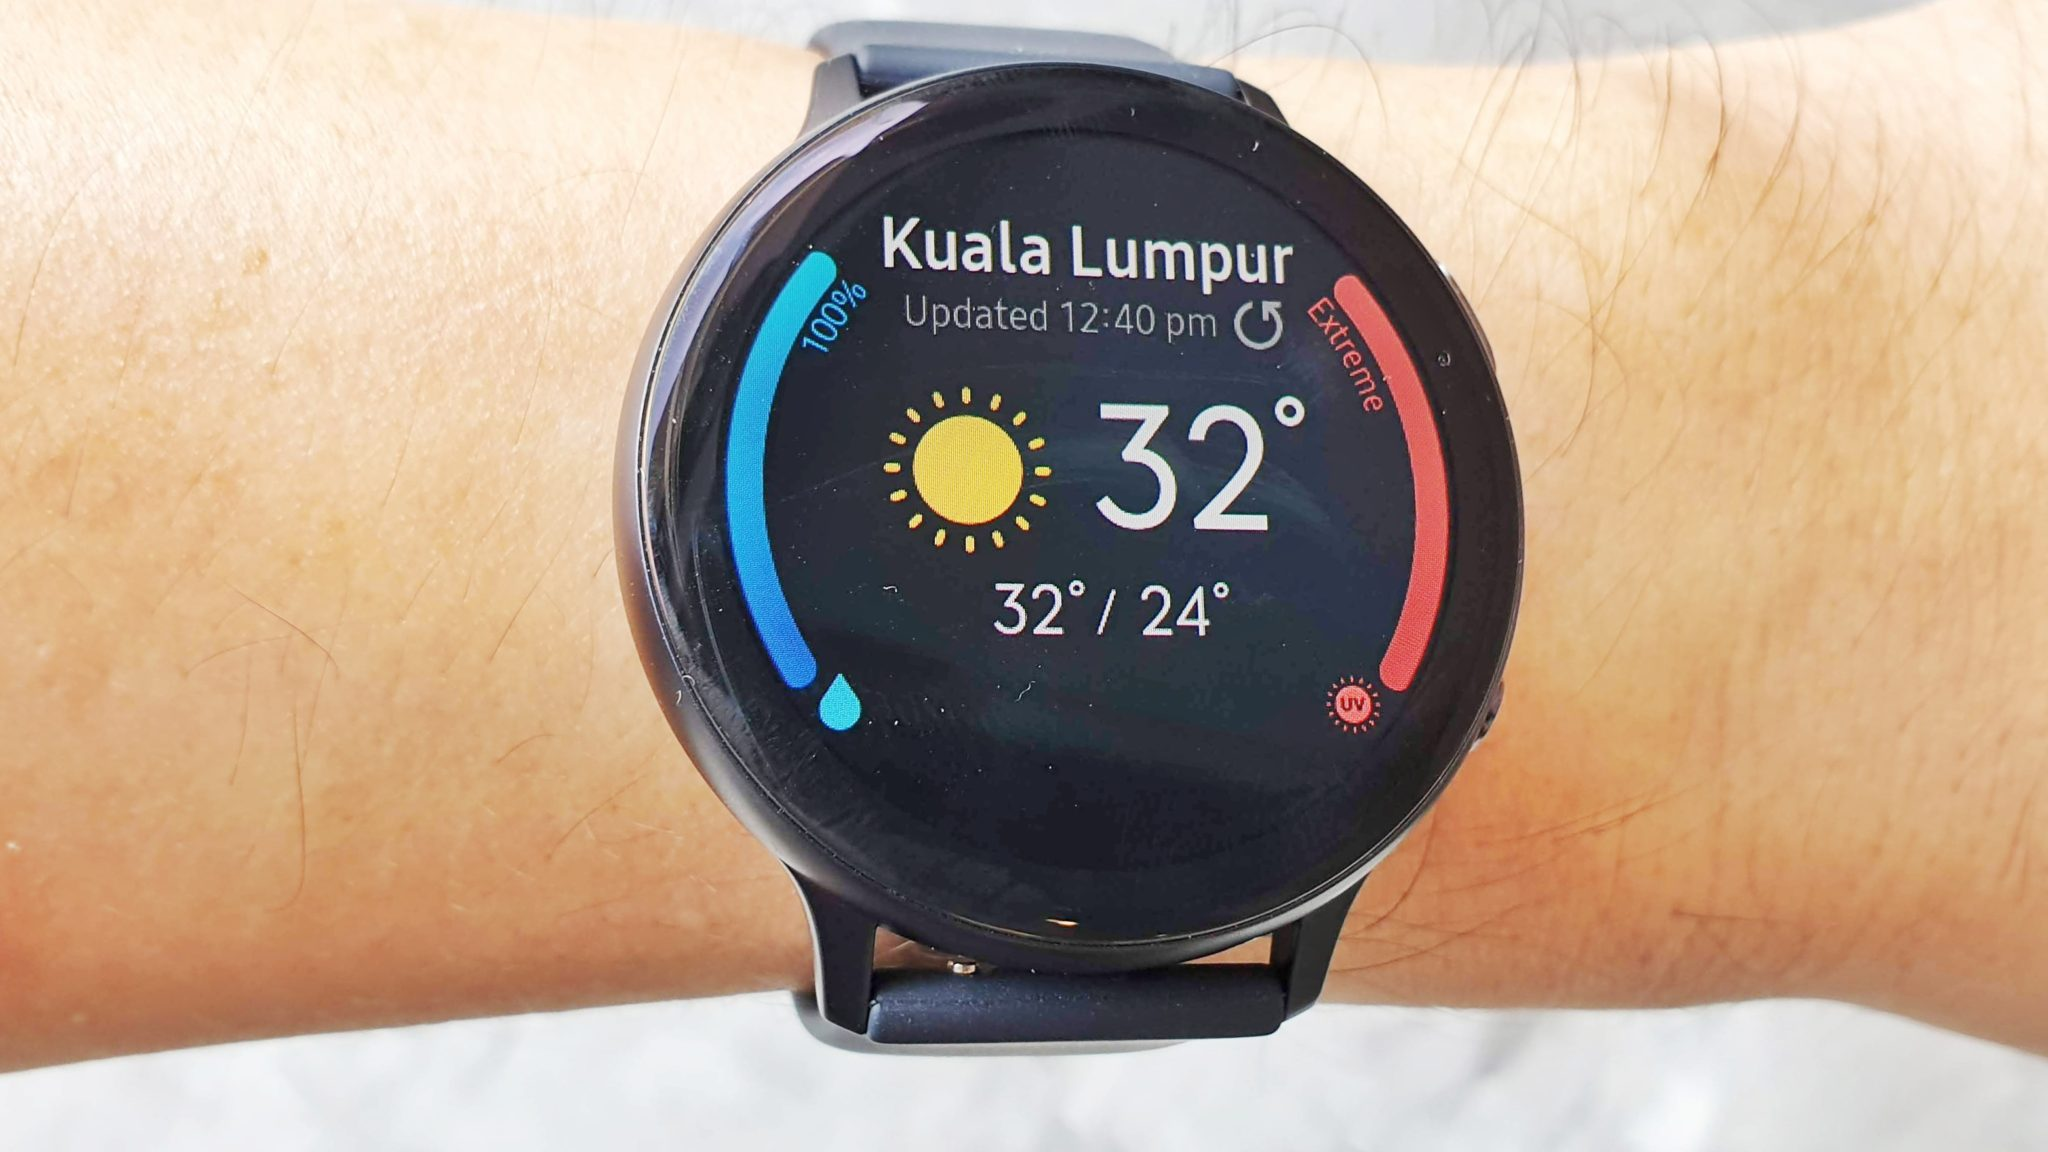 Watch Active2 weather